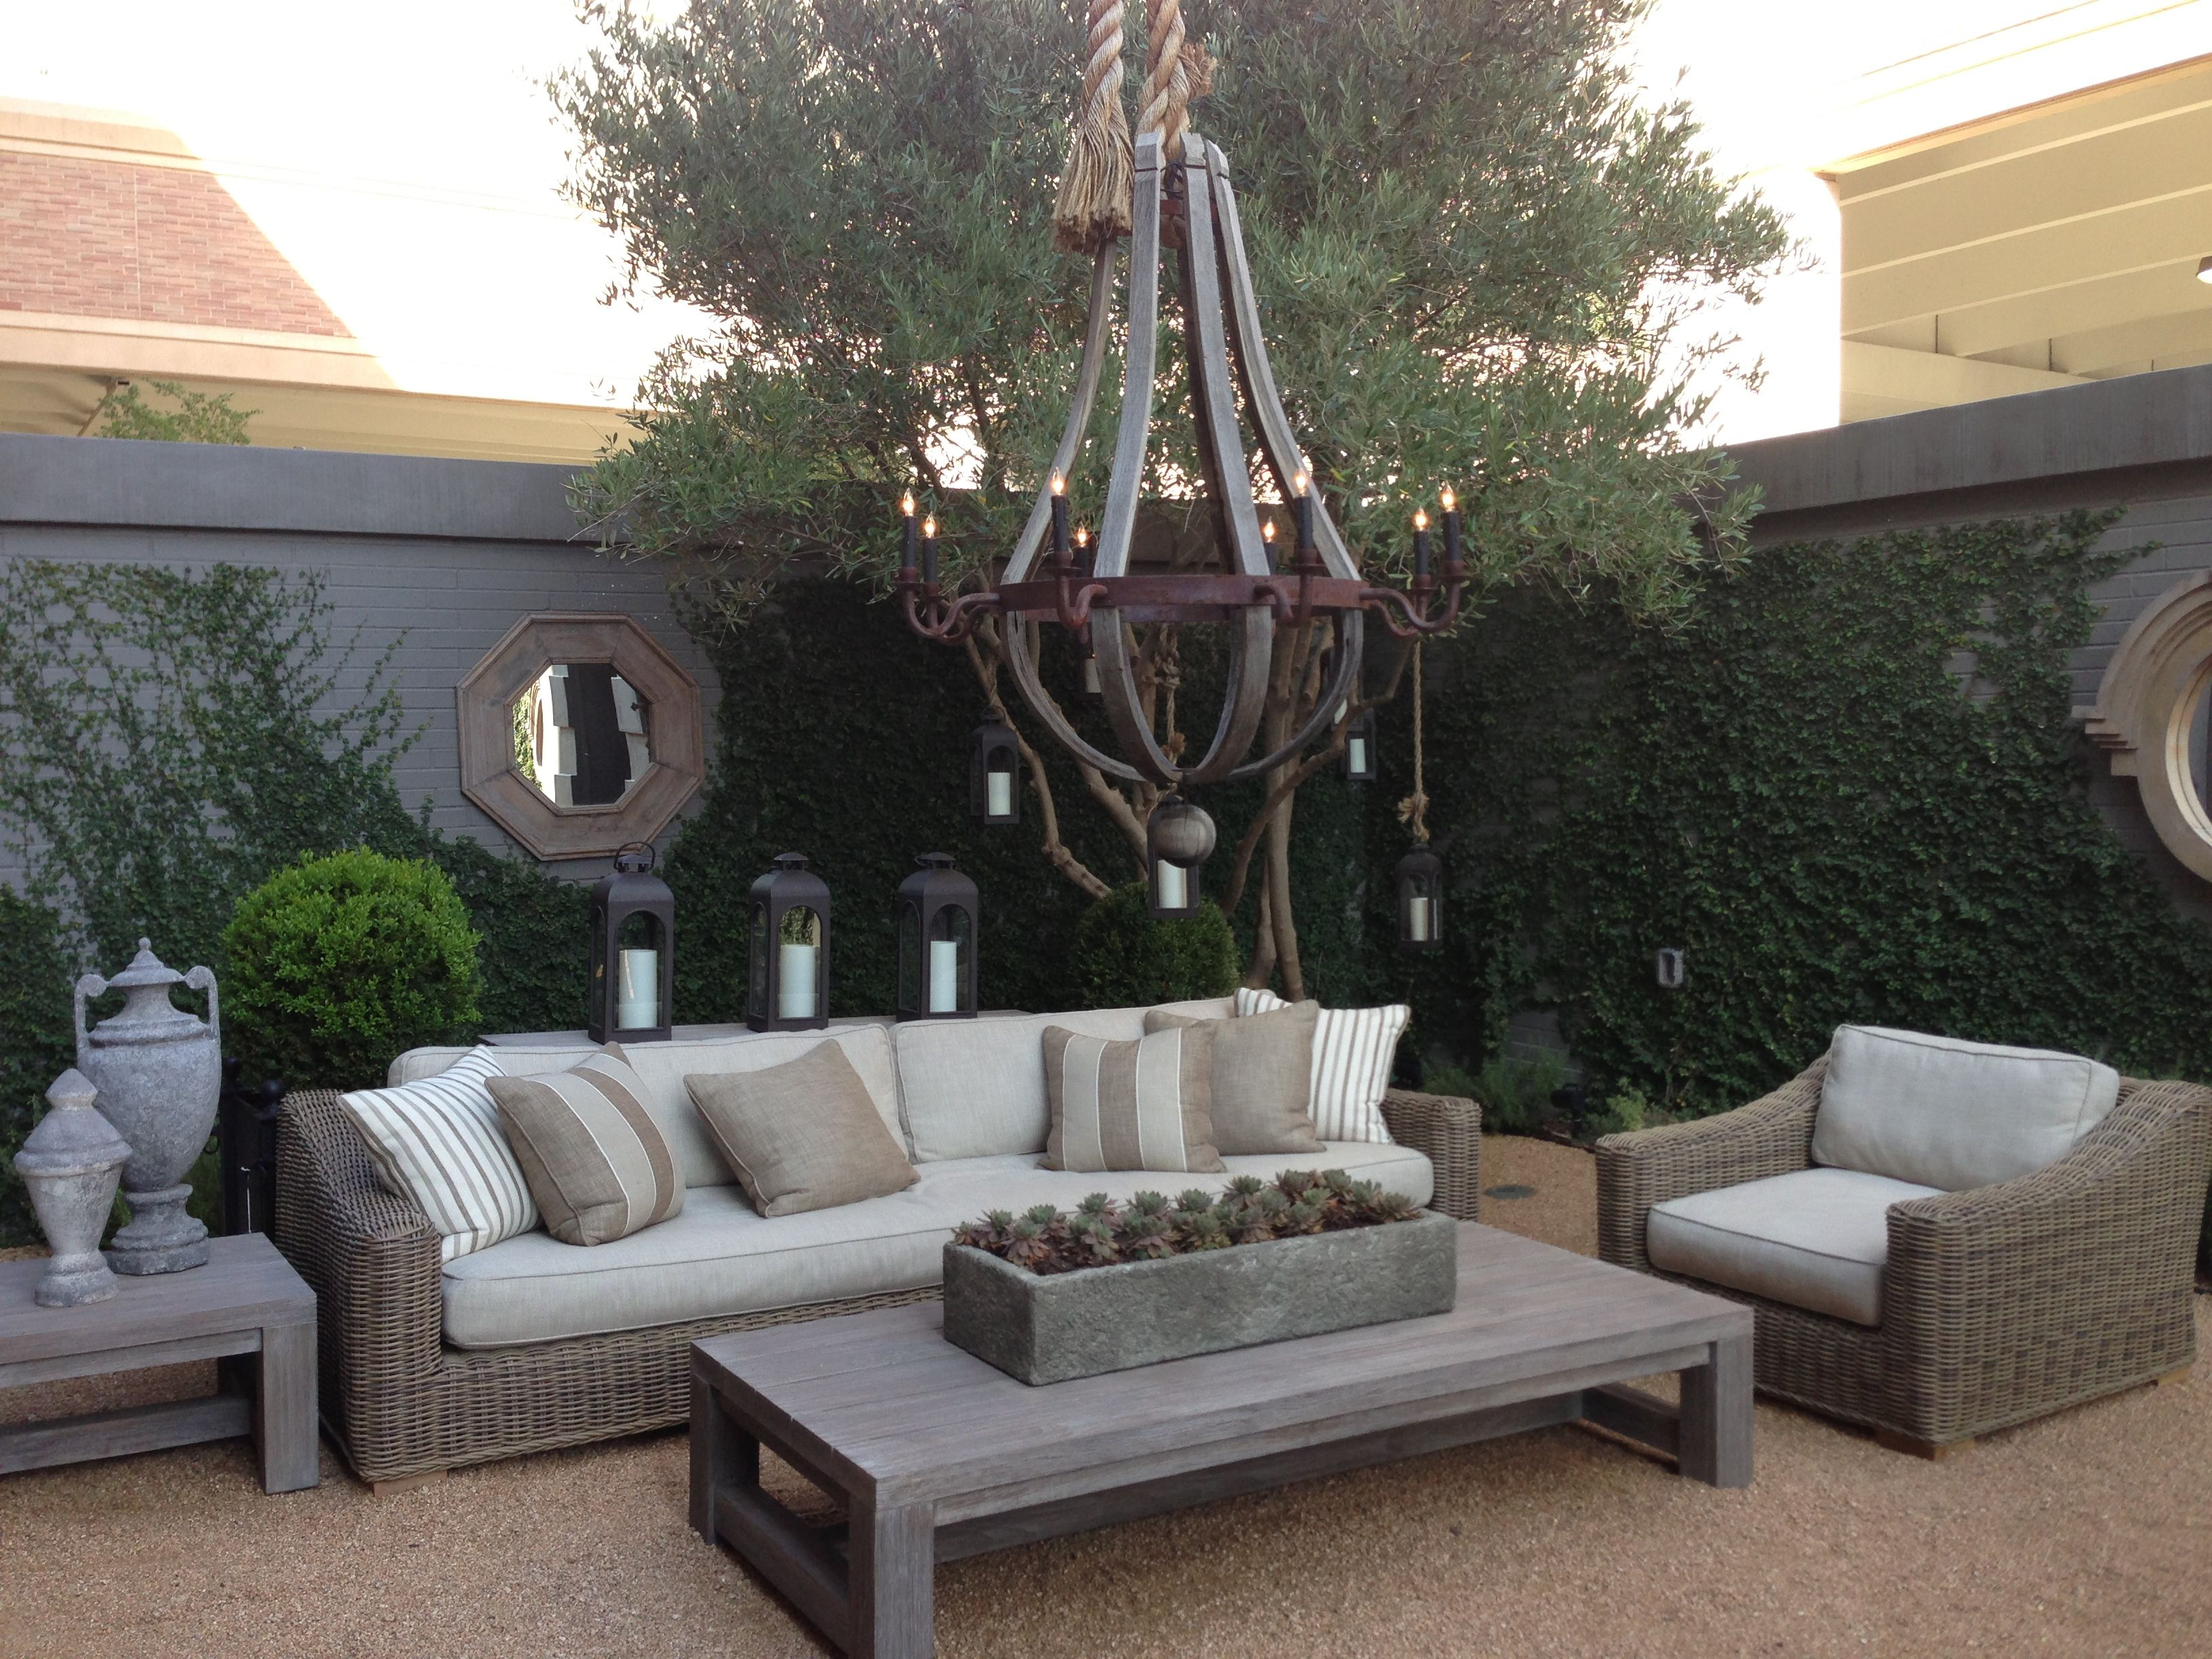 Attractive 25+ Best Restoration Hardware Outdoor Ideas On Pinterest | Restoration  Hardware Outdoor Furniture, Restoration Hardware Sofa And Outdoor Tables